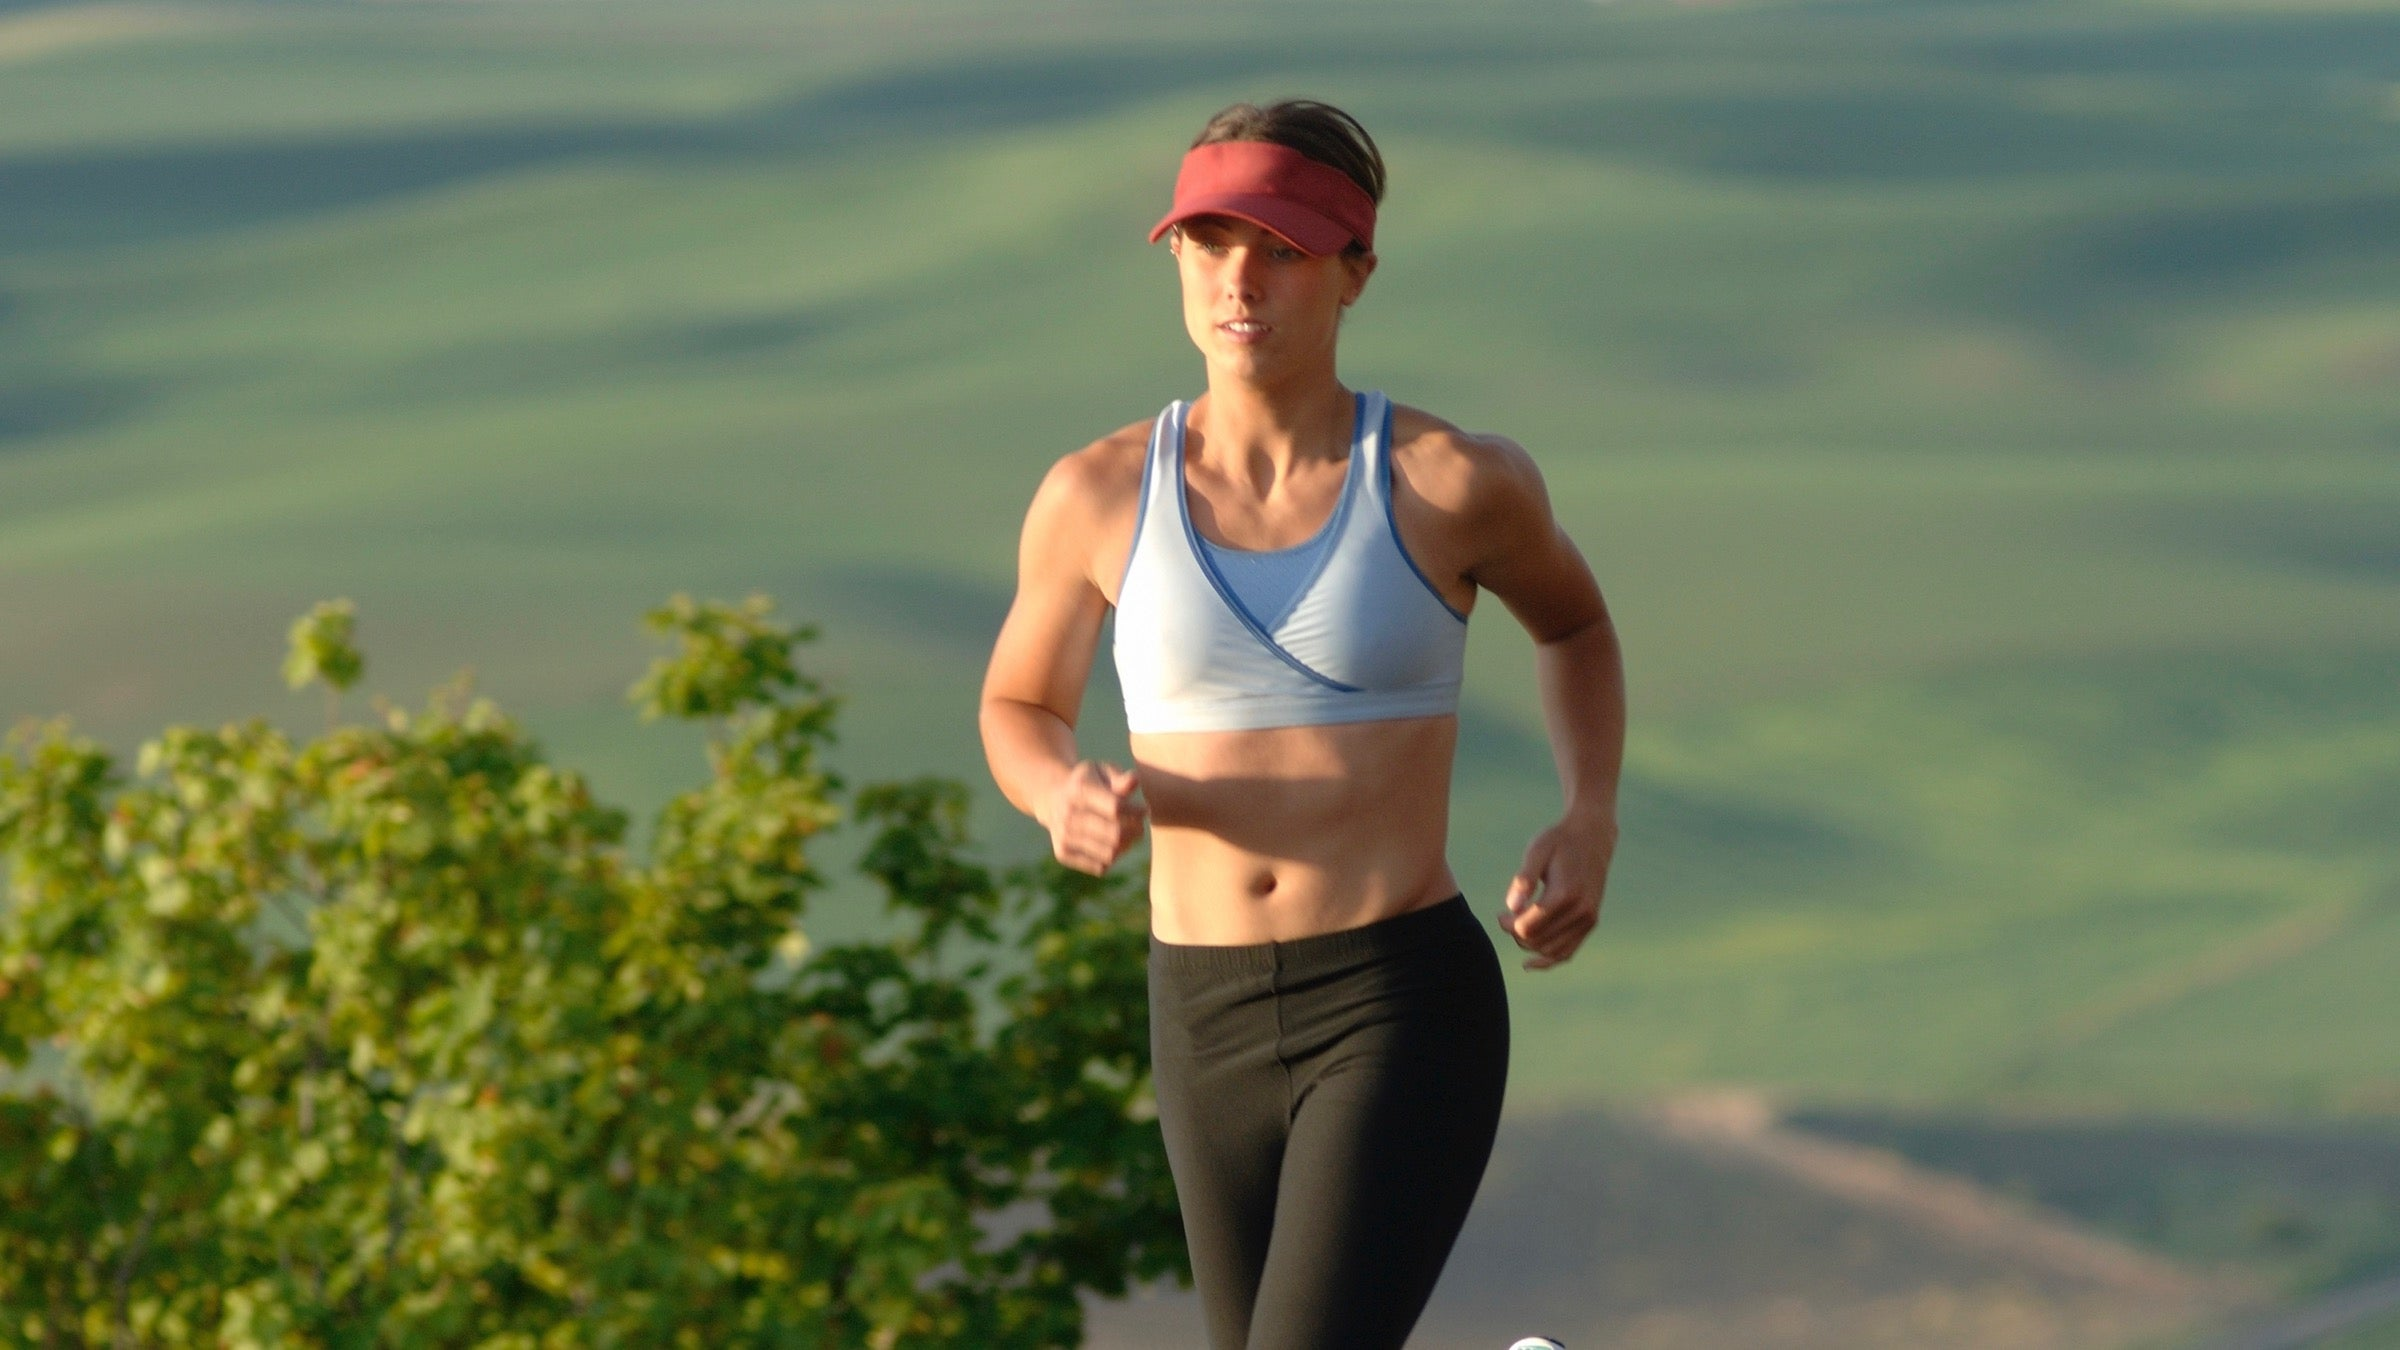 Ask Stacy: Why Is Gut Health So Important? - Triathlete